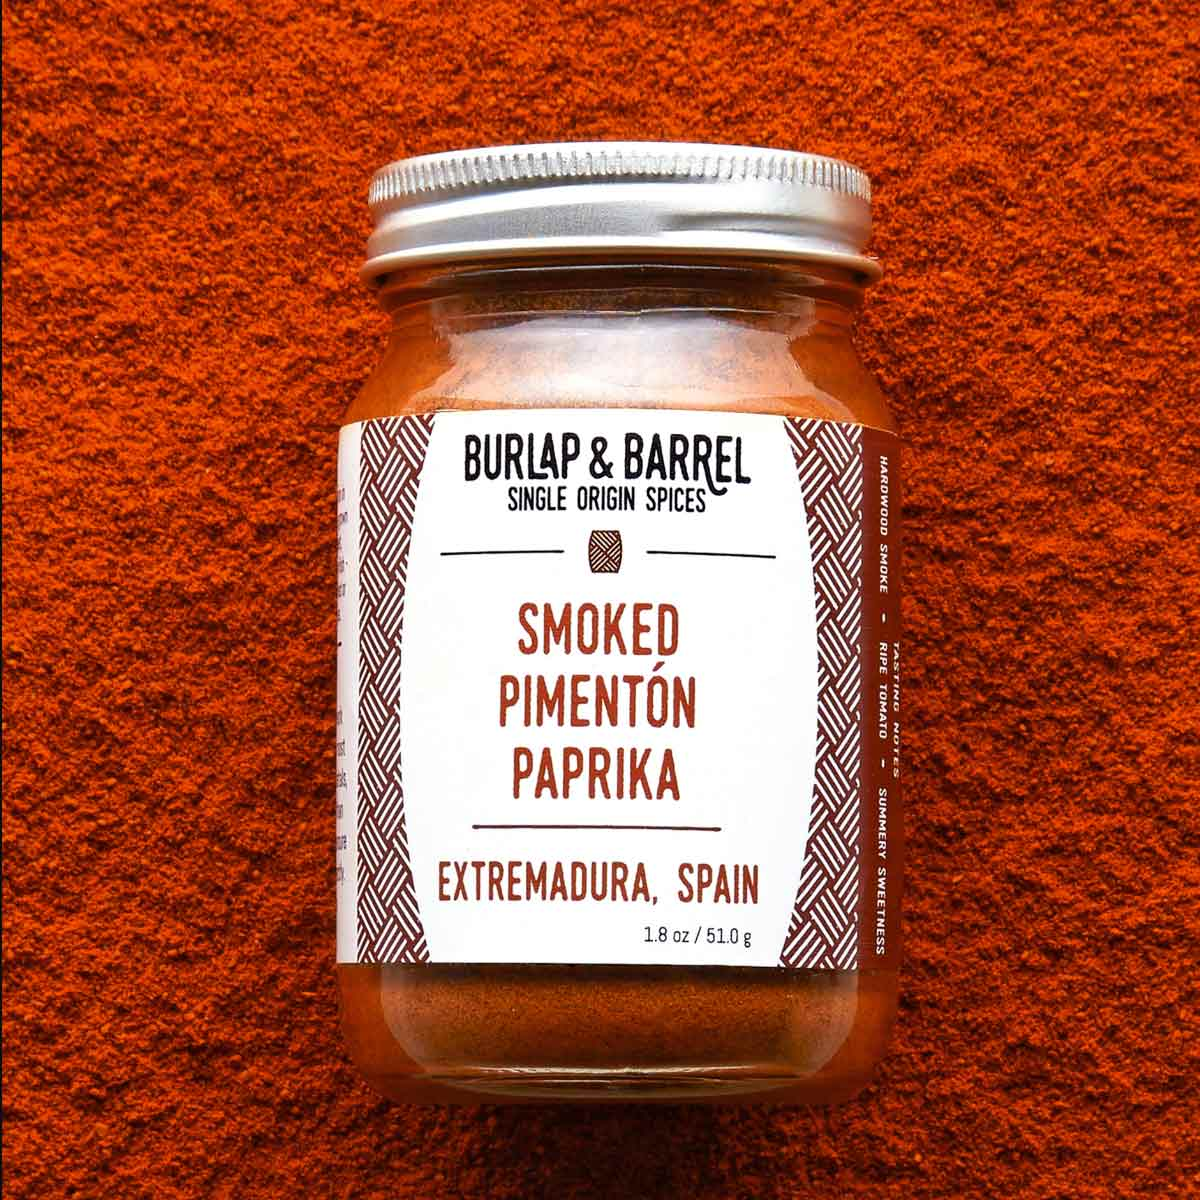 Smoked Pimenton Paprika in small jar